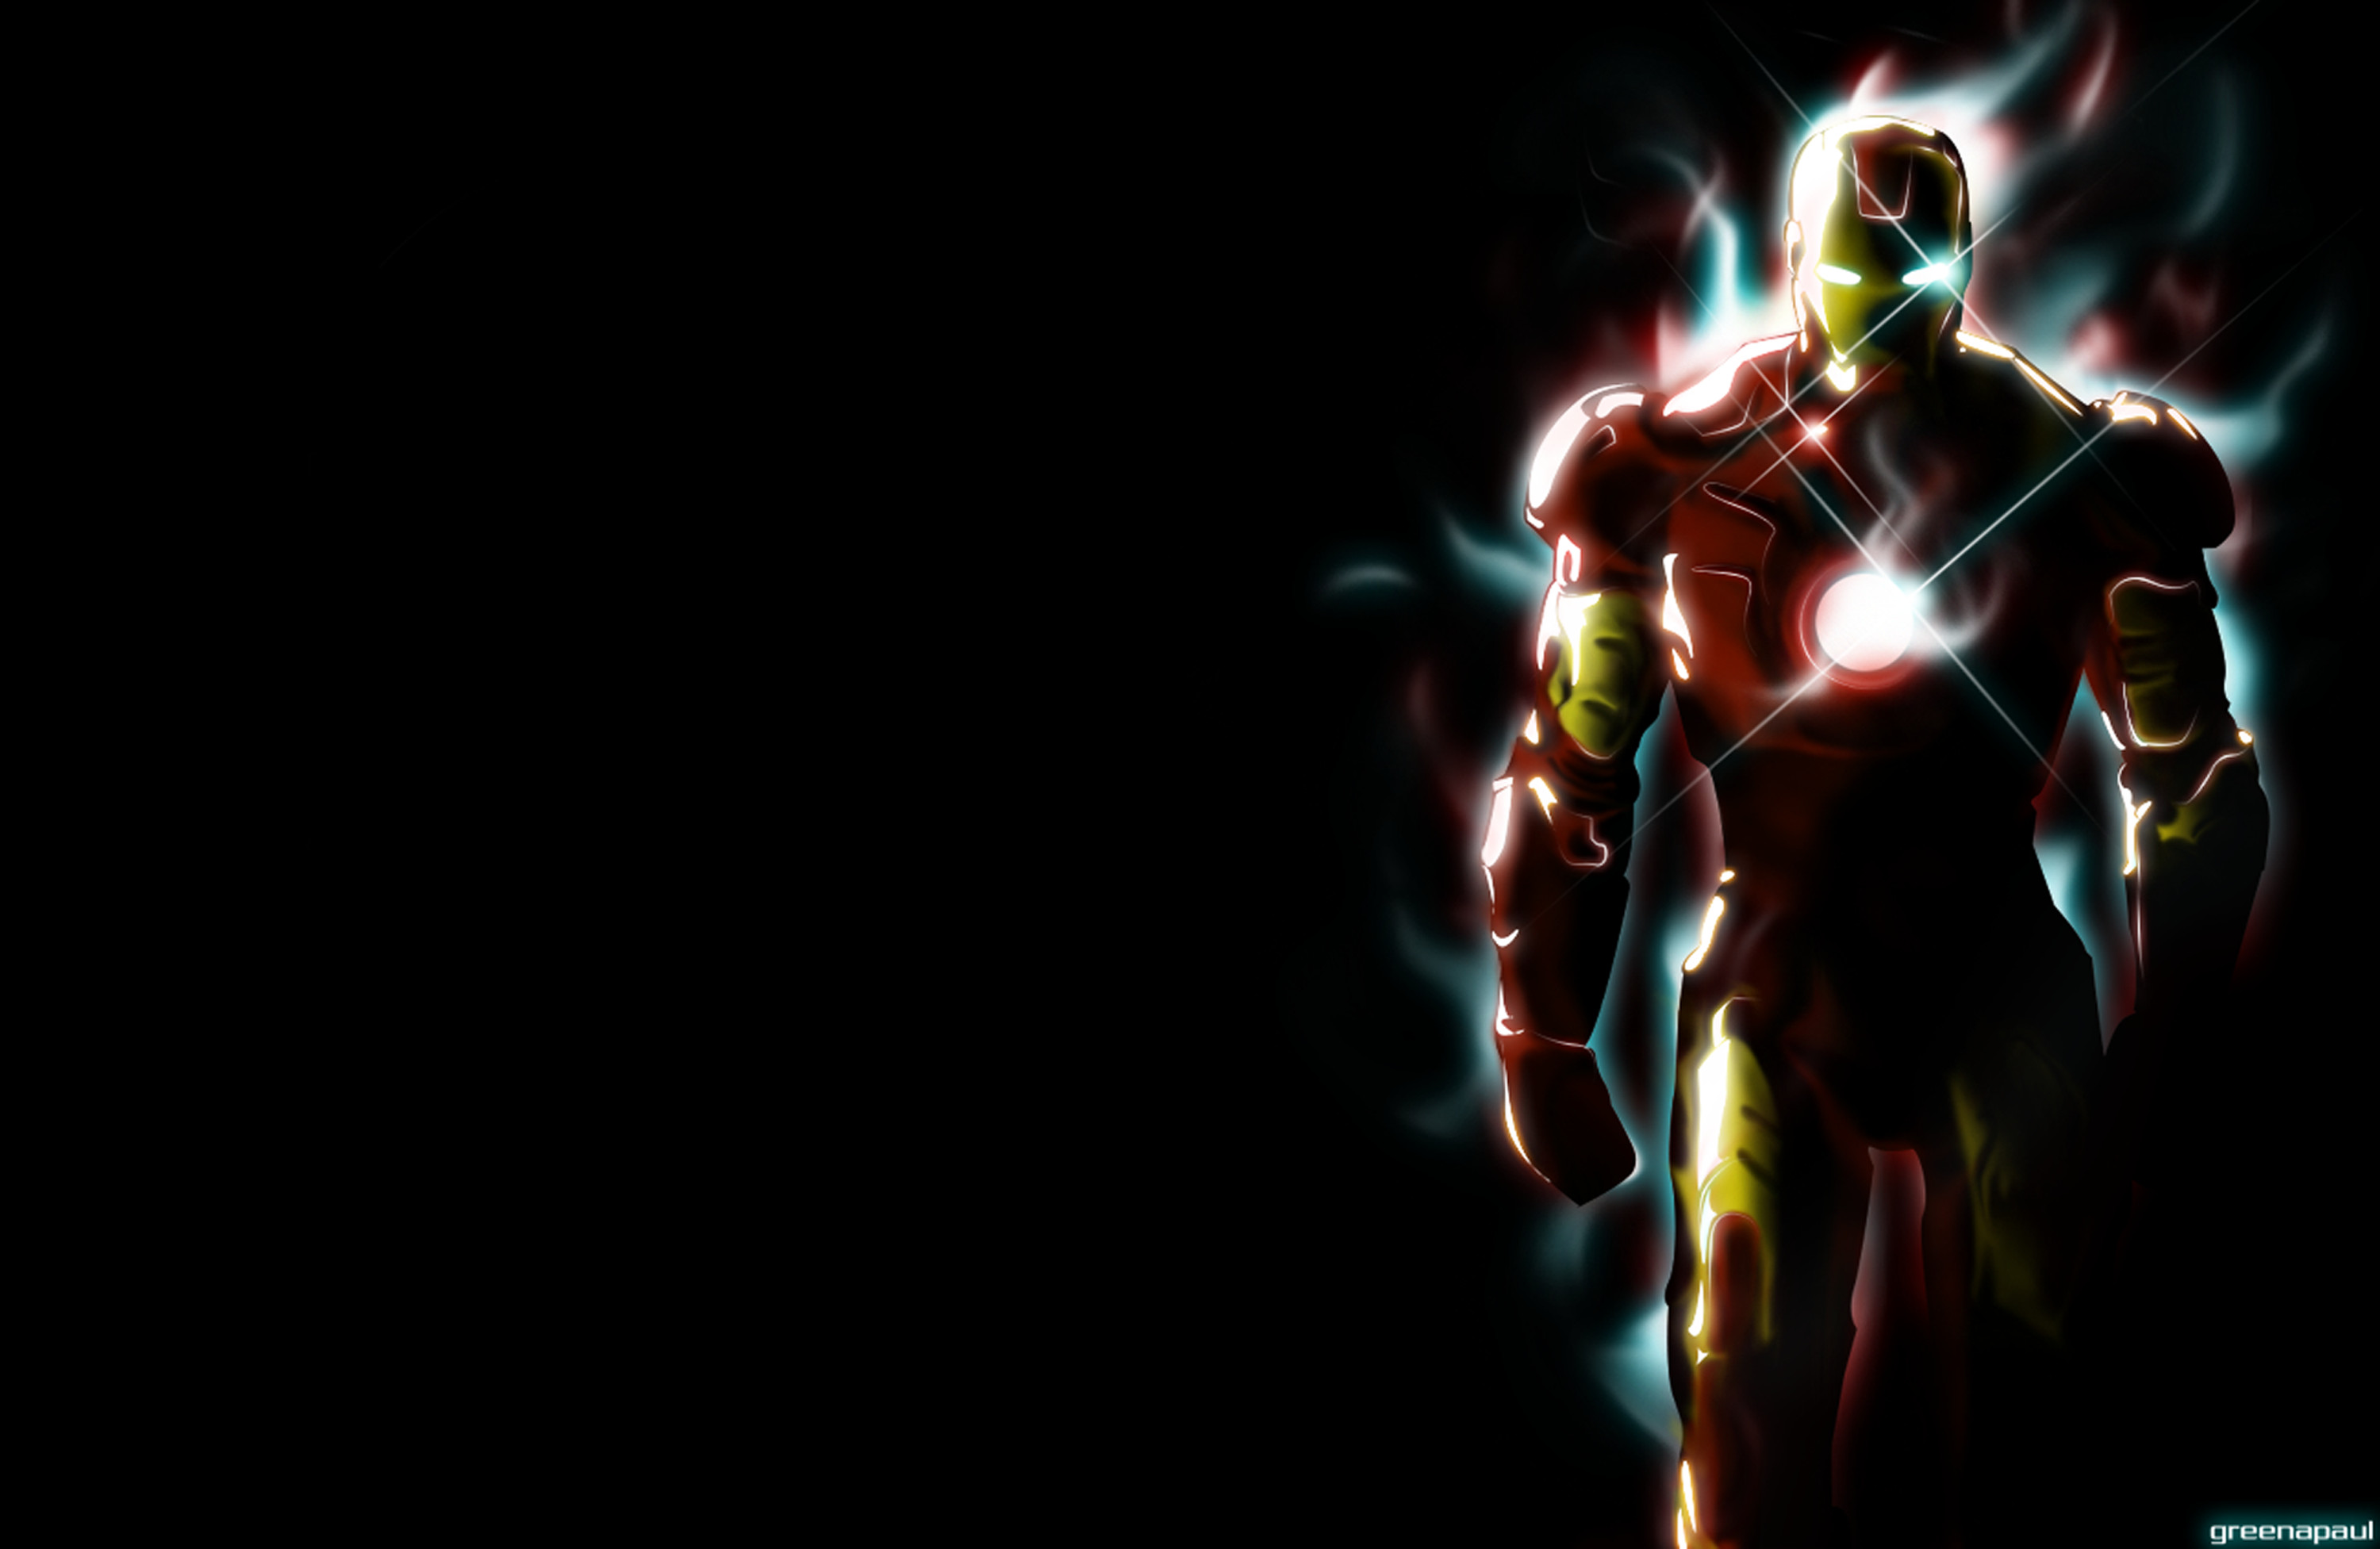 Cool Iron Man Wallpaper Images Pictures   Becuo 3000x1953